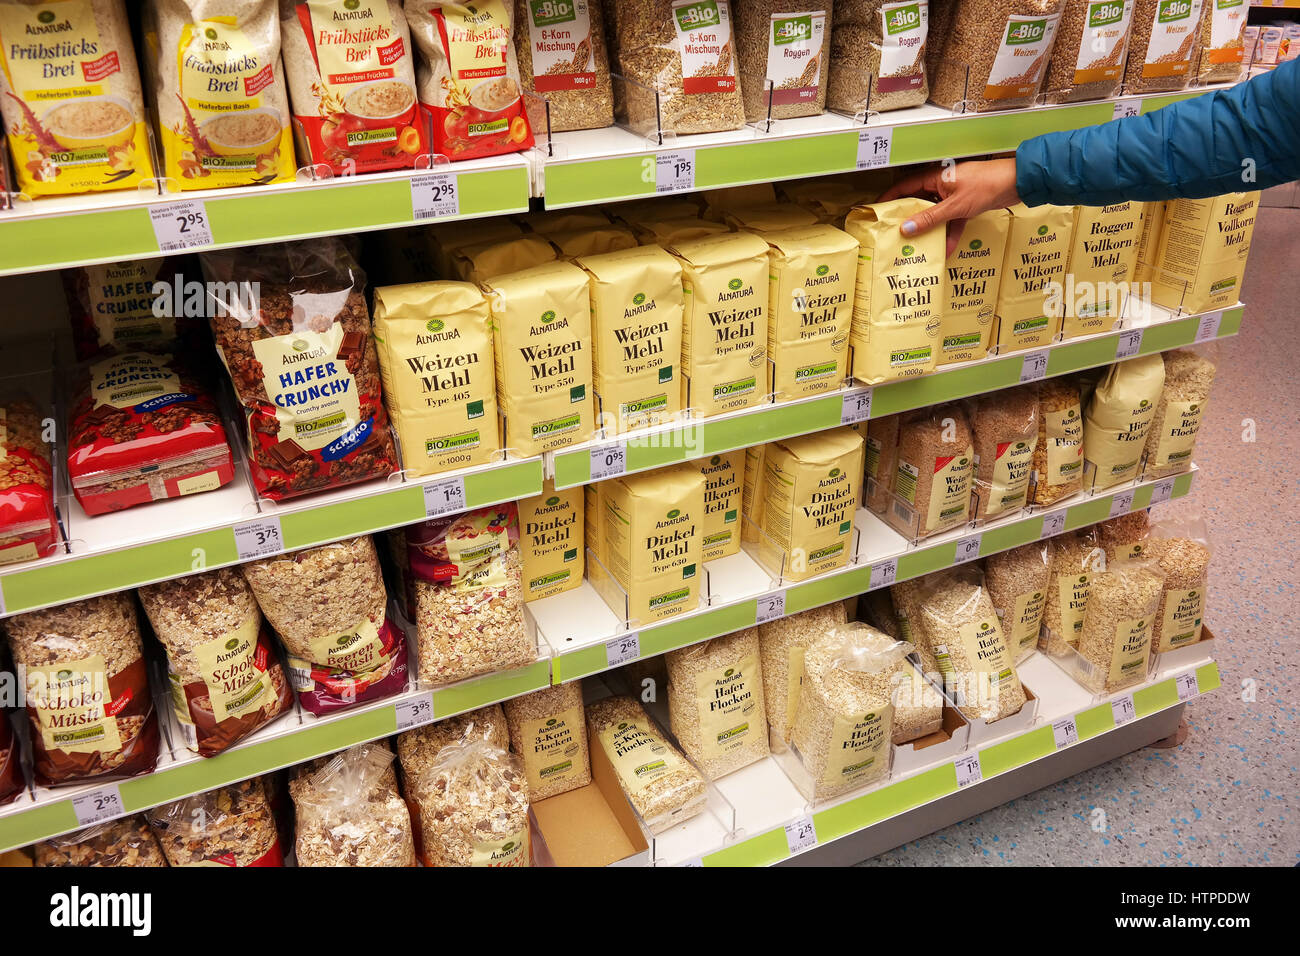 Shelves With Health Food Products Of Alnatura Brand In A Dm